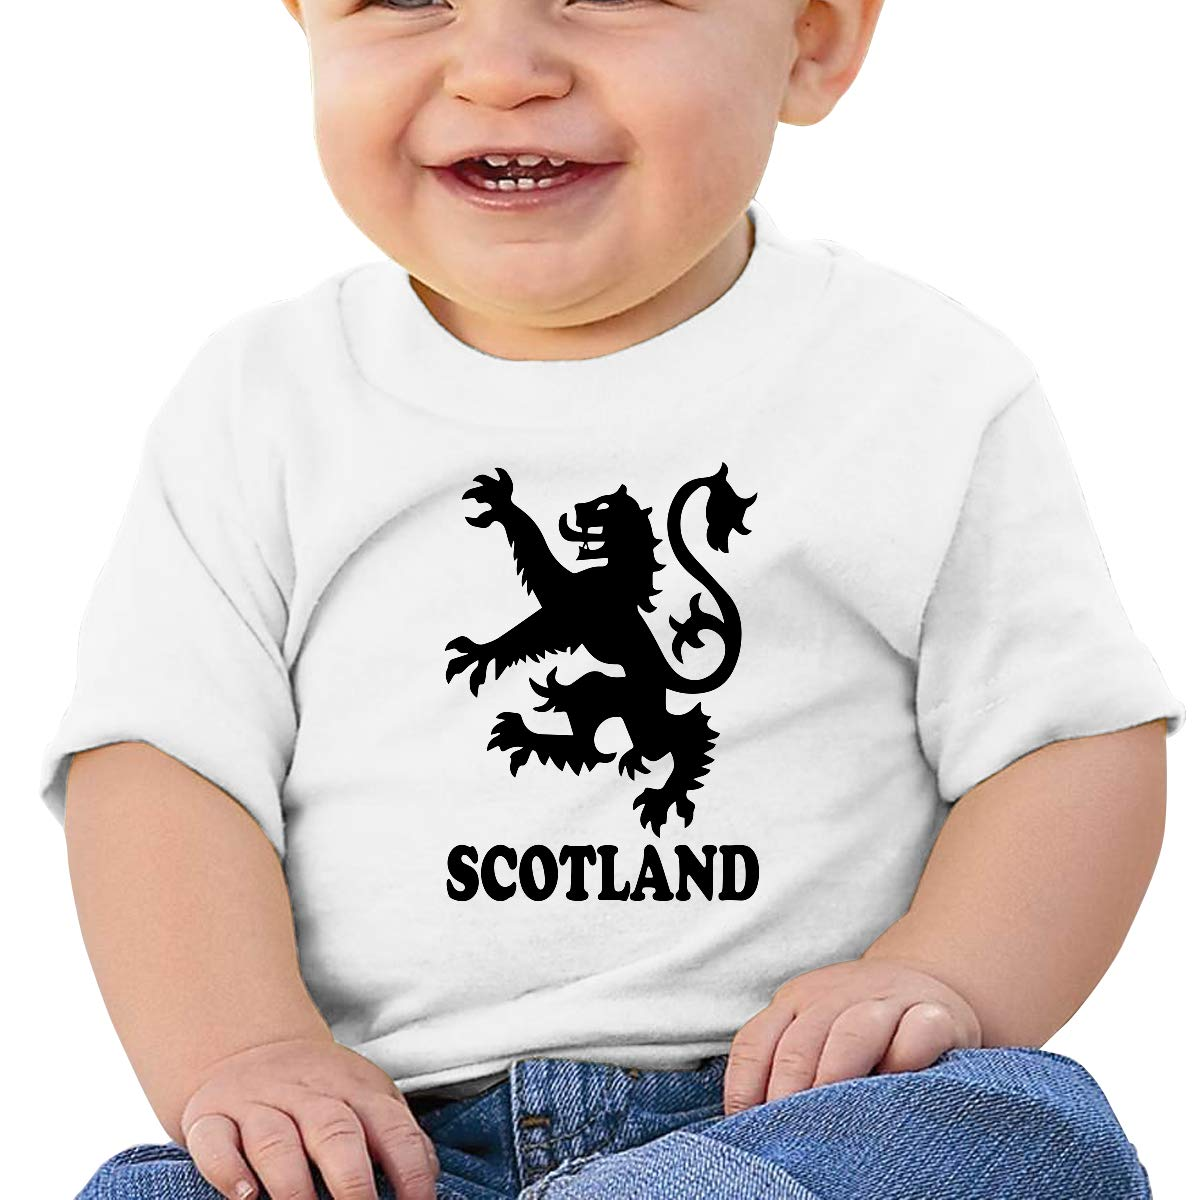 Lion Rampant Scotland Scottish Newborn Baby Short Sleeve Crewneck Tee Shirt 6-18 Month Tops